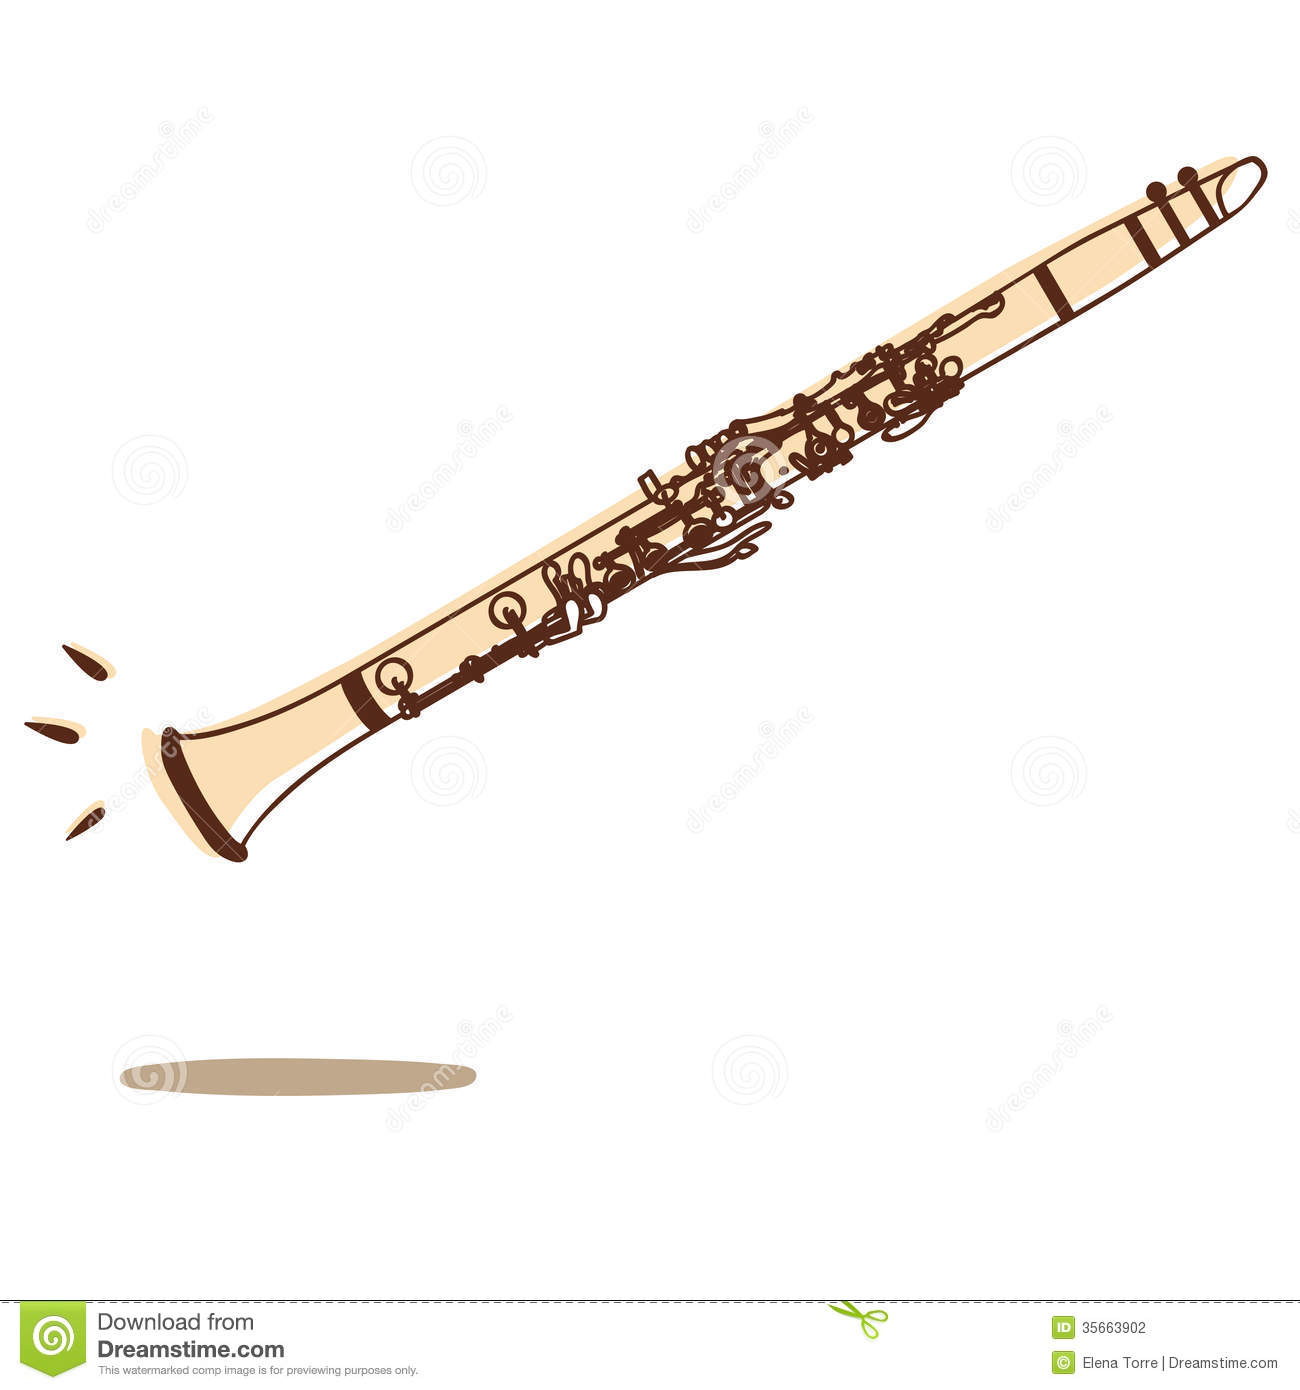 Clarinet vector stock vector. Illustration of play, soul ...